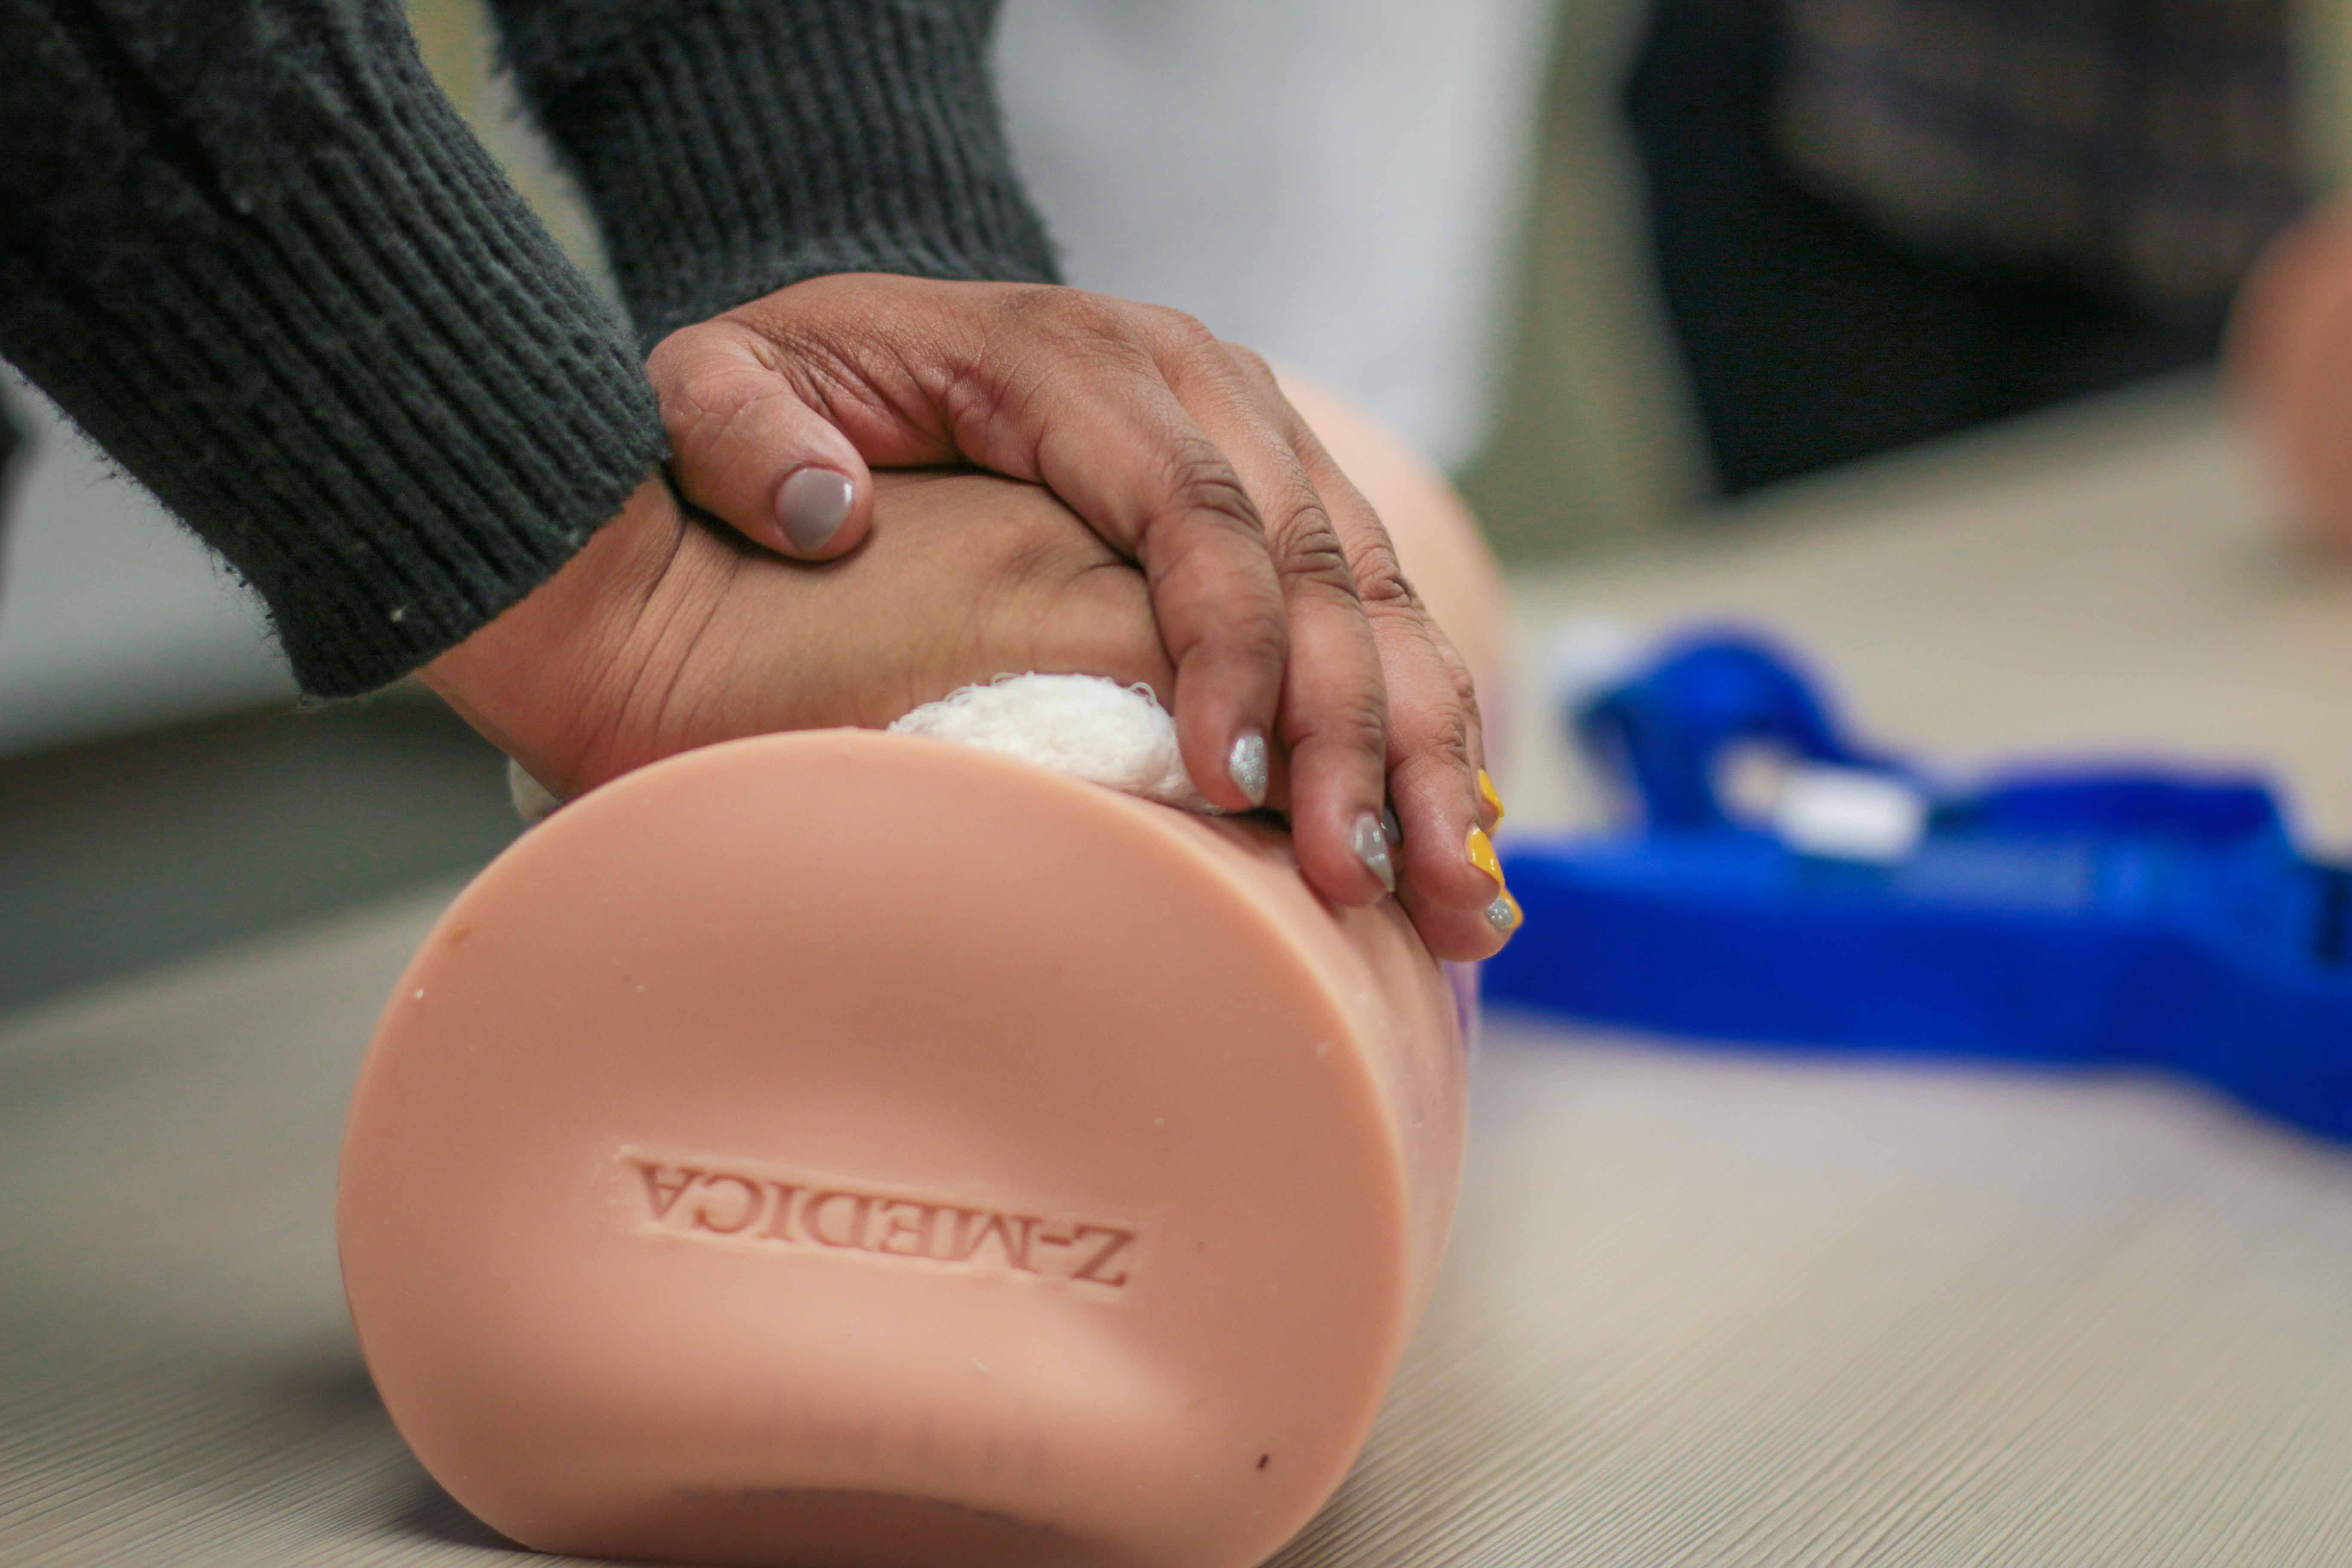 A woman practices life-saving techniques during a Stop the Bleed class